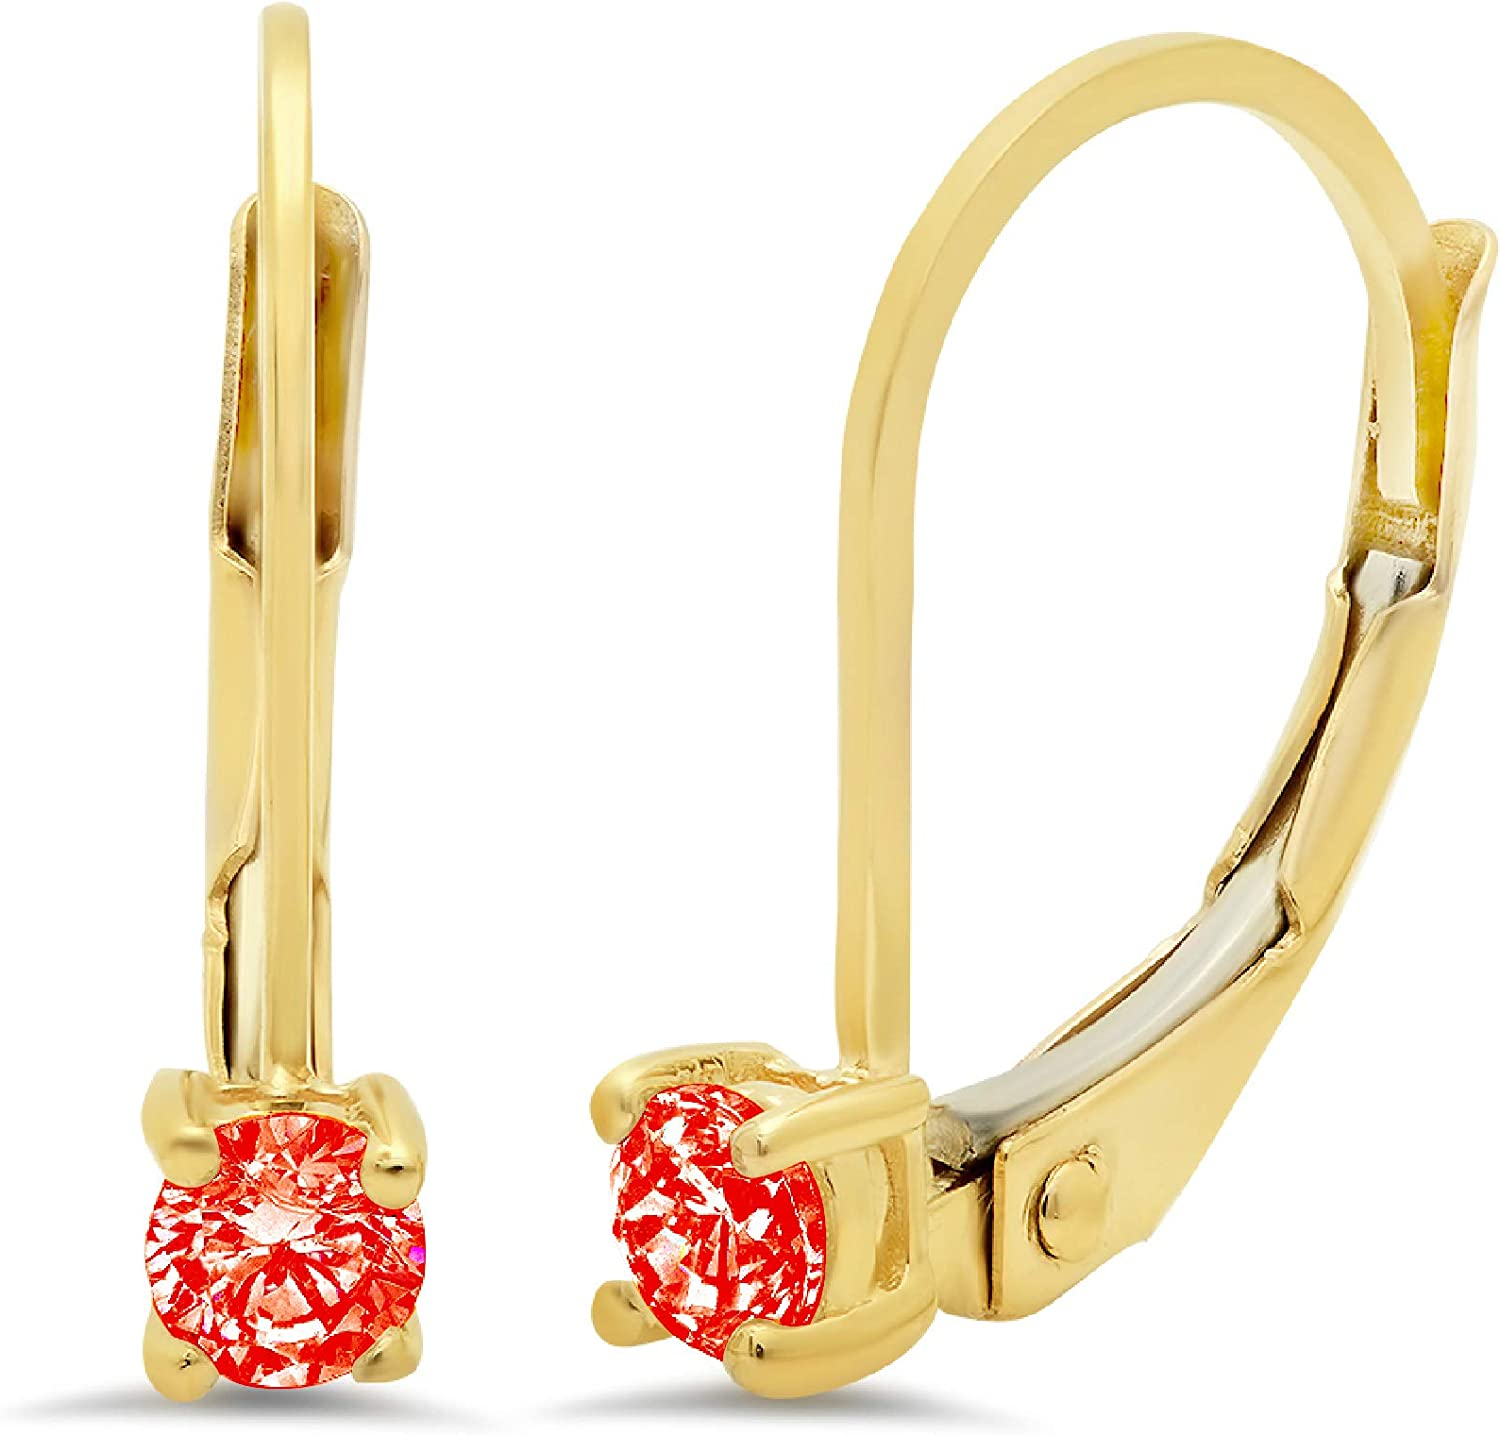 0.20 ct Round Cut ideal VVS1 Conflict Free Gemstone Solitaire Red Simulated Diamond CZ Designer Lever back Drop Dangle Earrings Solid 14k Yellow Gold